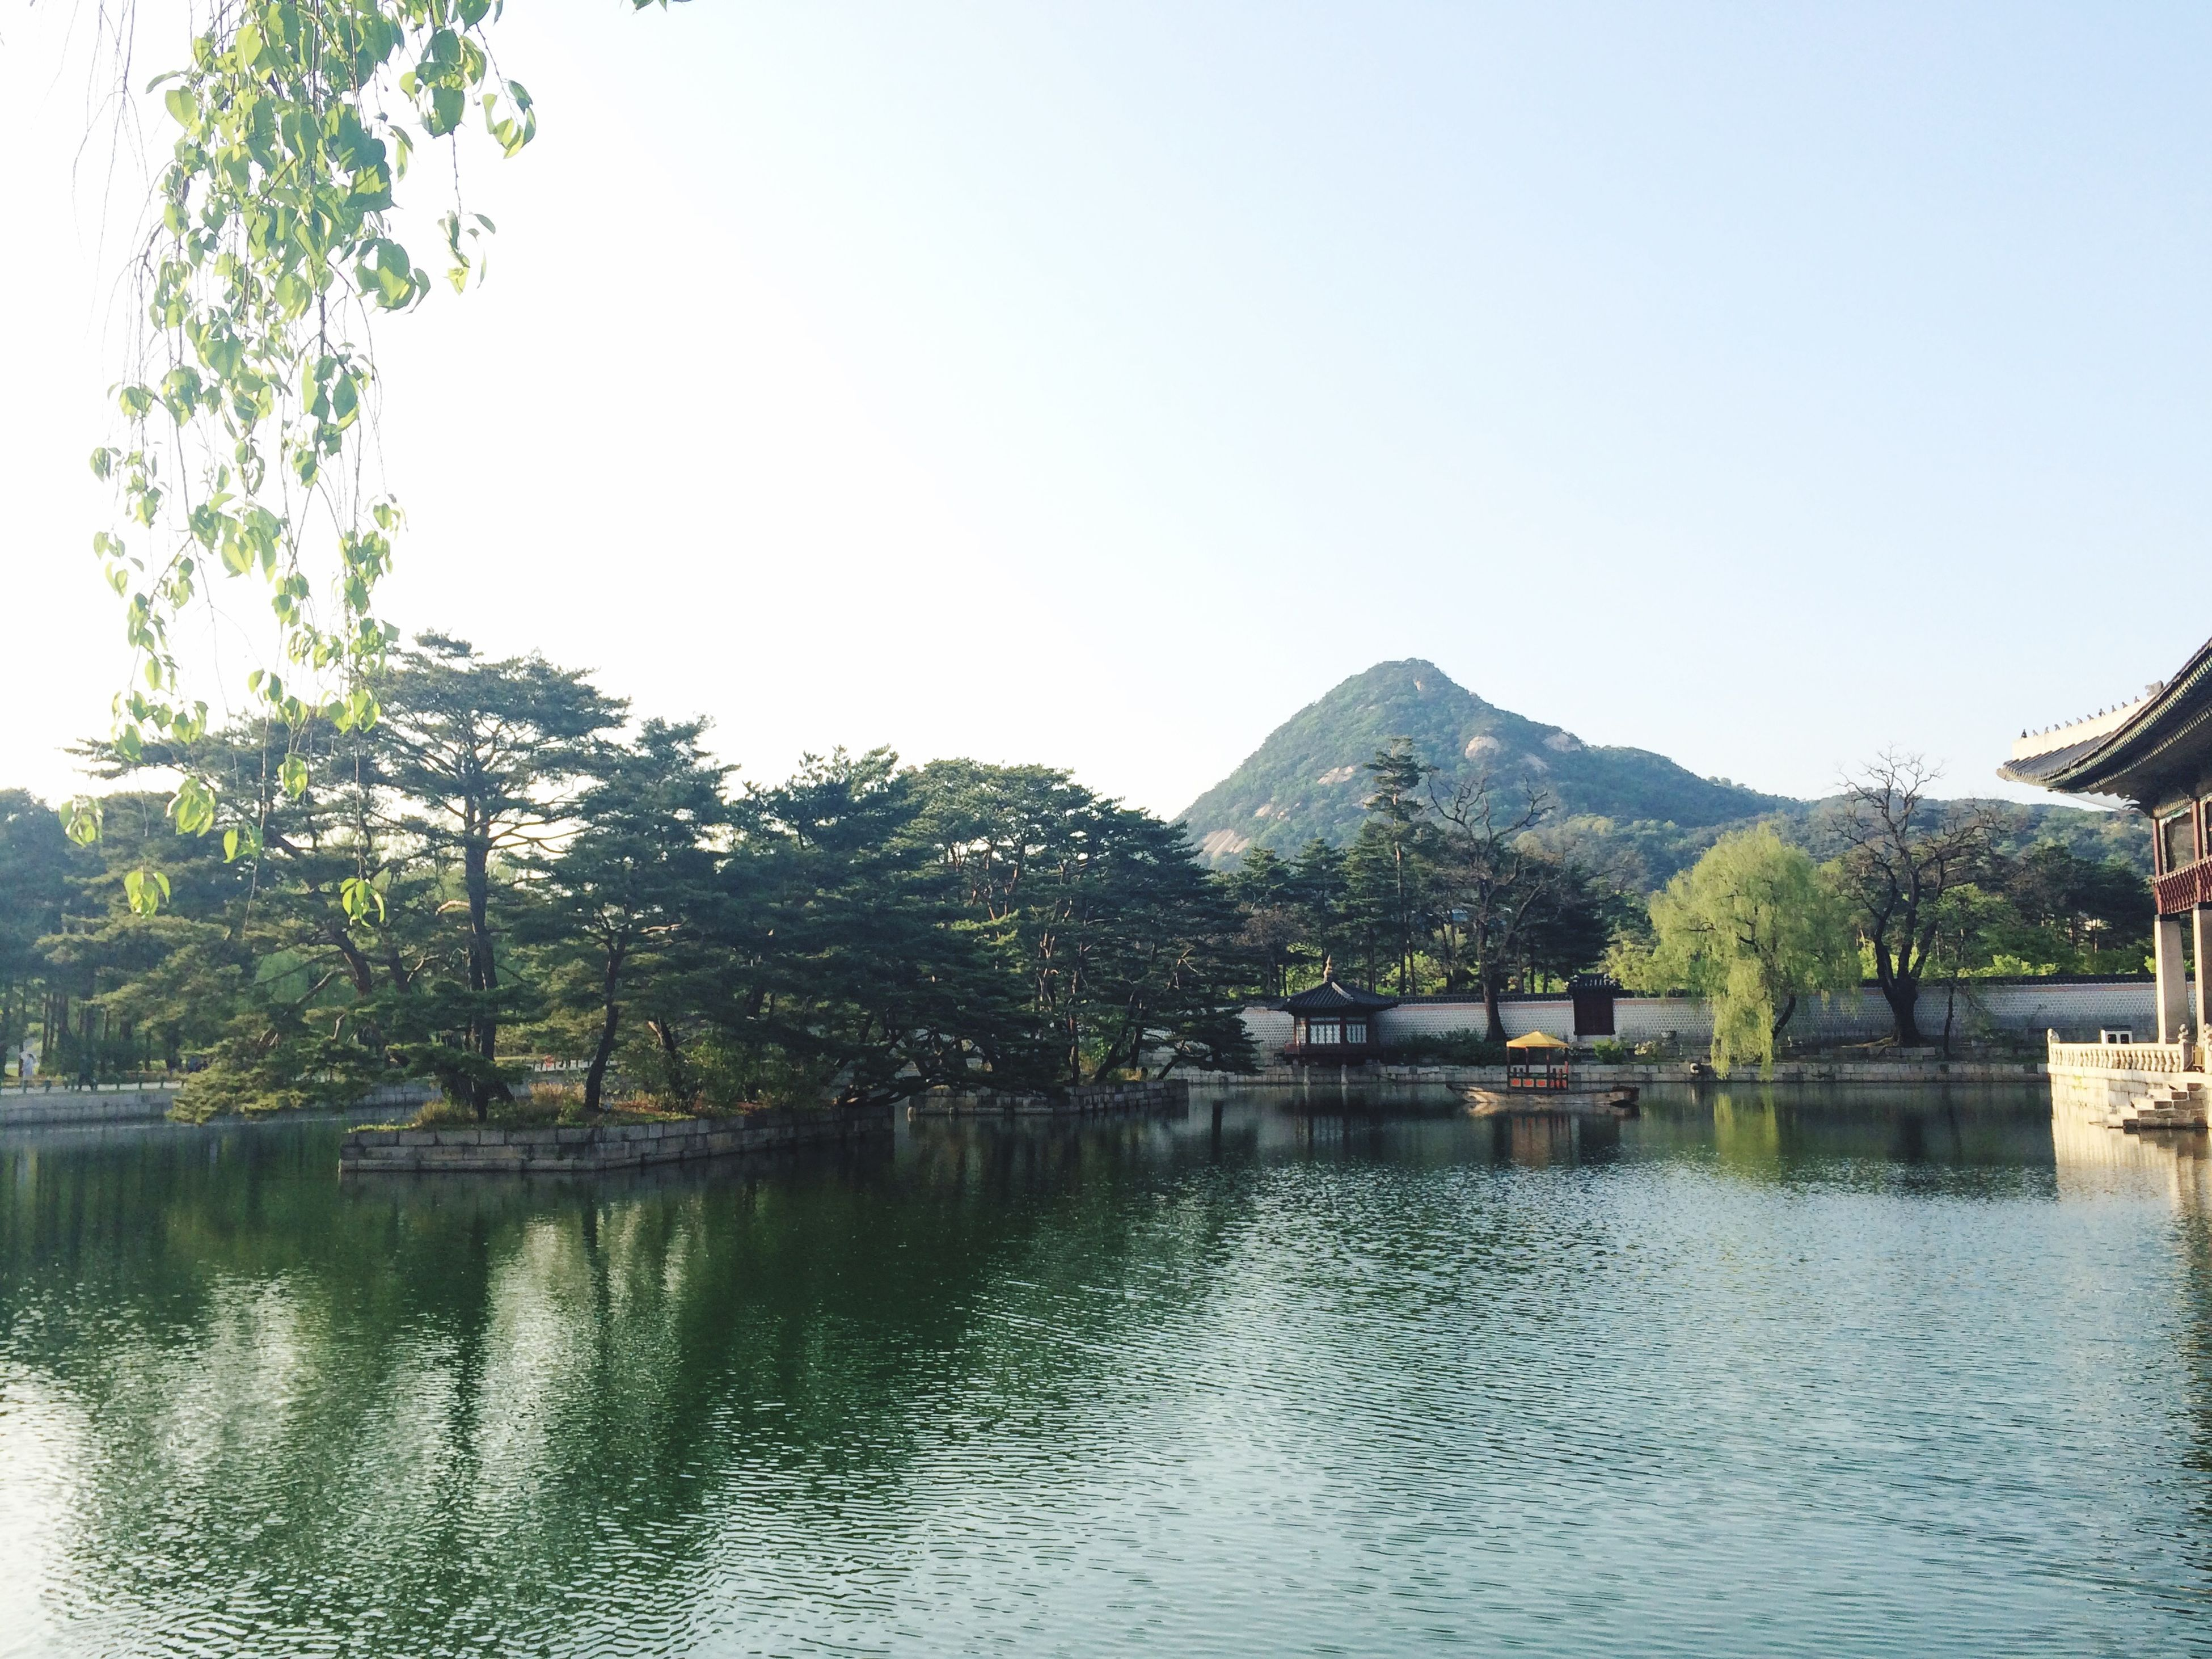 clear sky, water, mountain, waterfront, tree, lake, tranquil scene, copy space, tranquility, scenics, built structure, nature, beauty in nature, river, mountain range, reflection, architecture, building exterior, day, idyllic